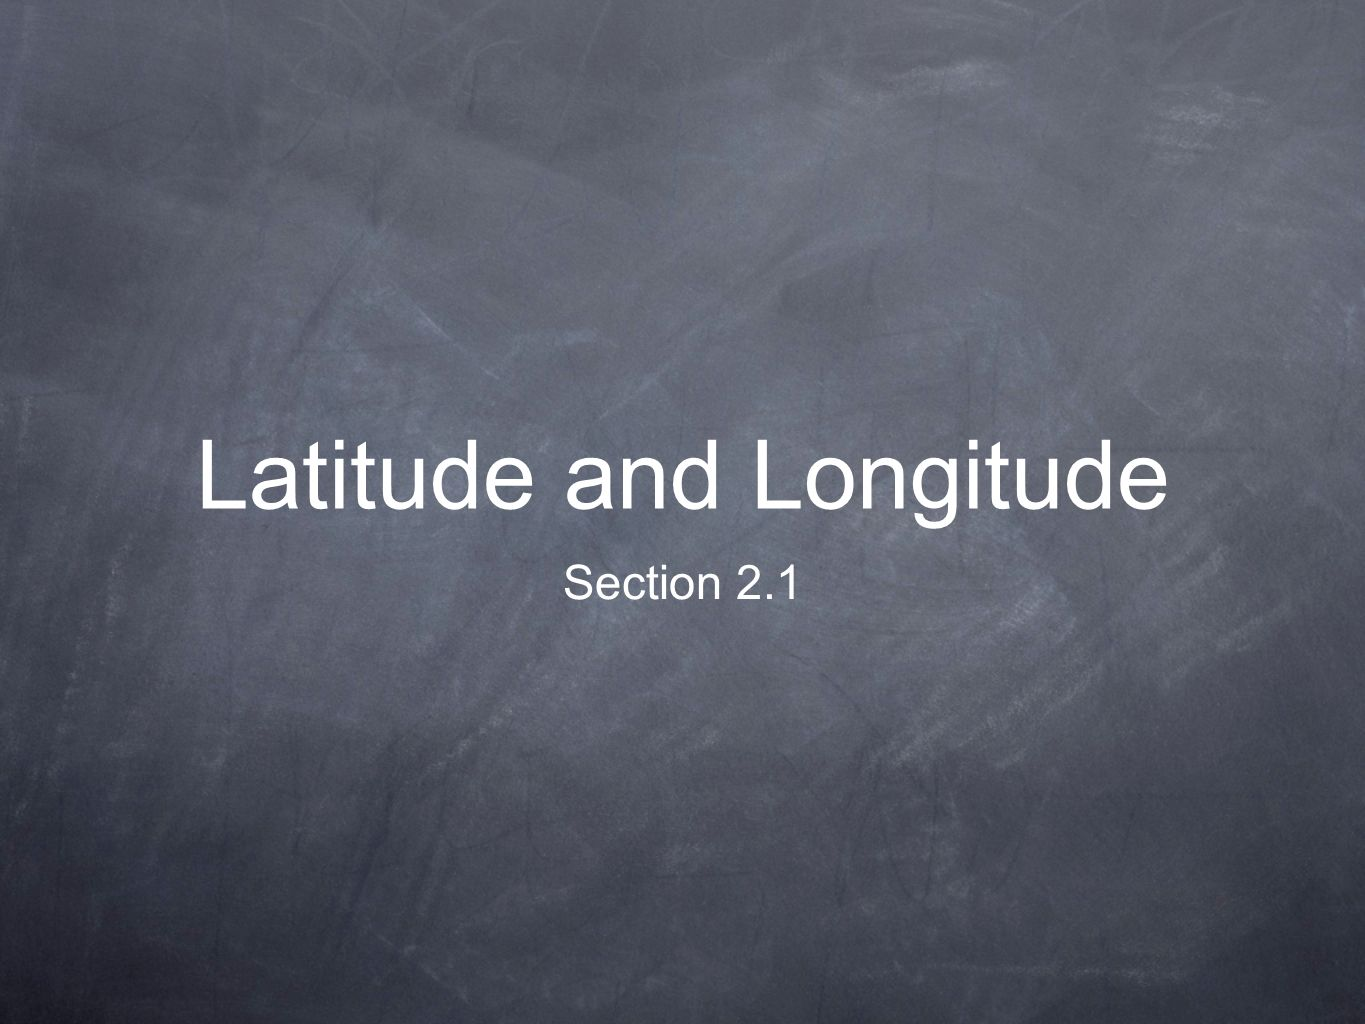 Latitude and Longitude Section 2.1